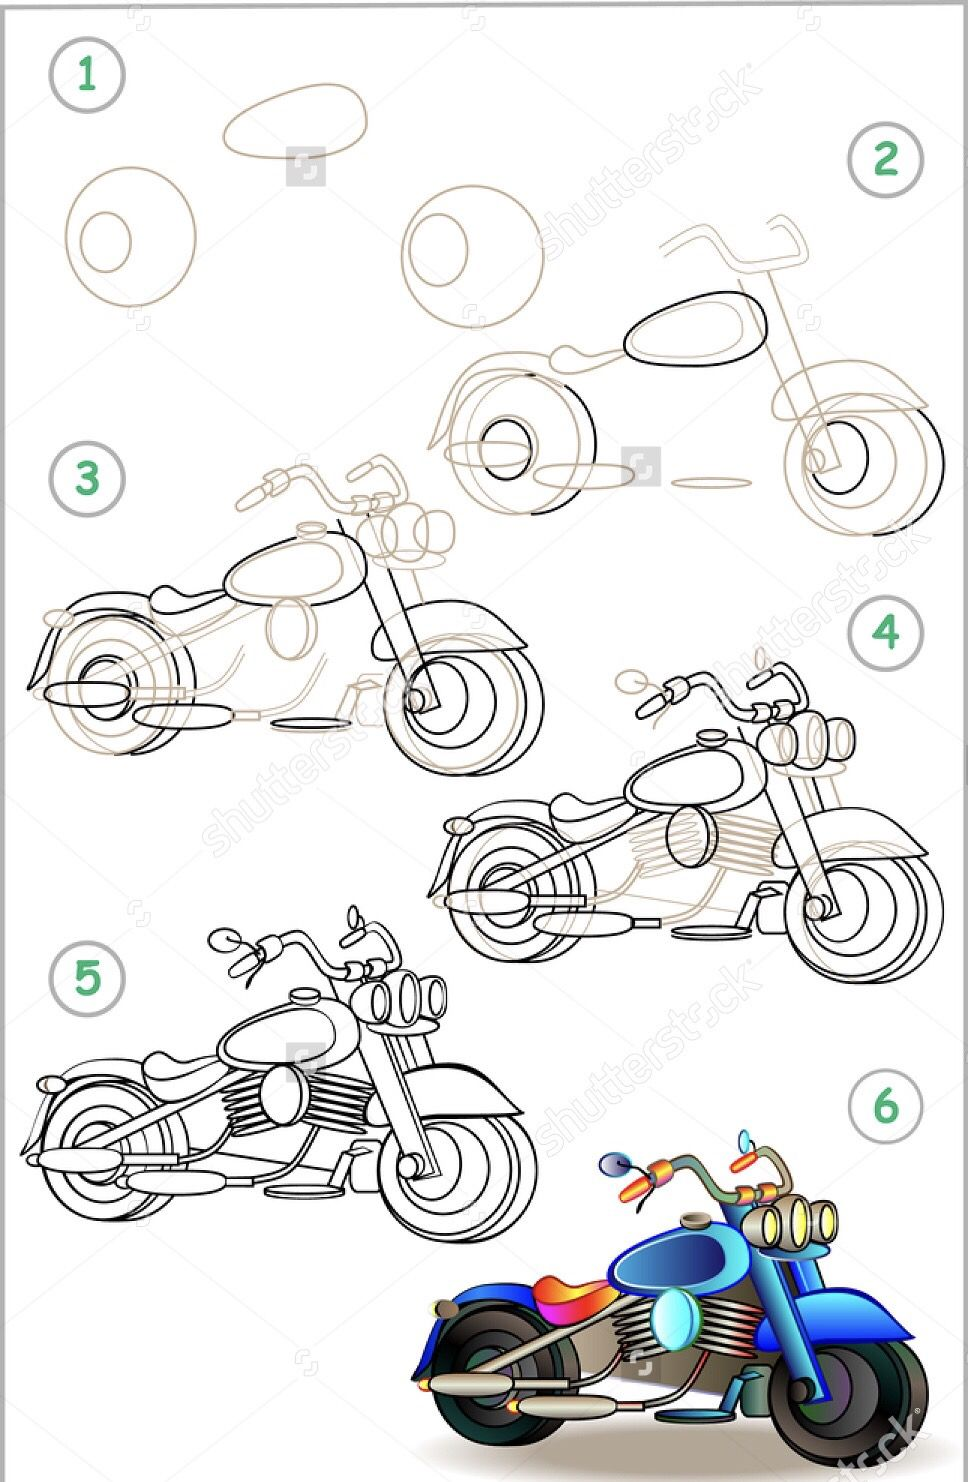 Pin By Hoods On Mi Fai Un Disegno Motorbike Drawing Simple Car Drawing Motorcycle Drawing